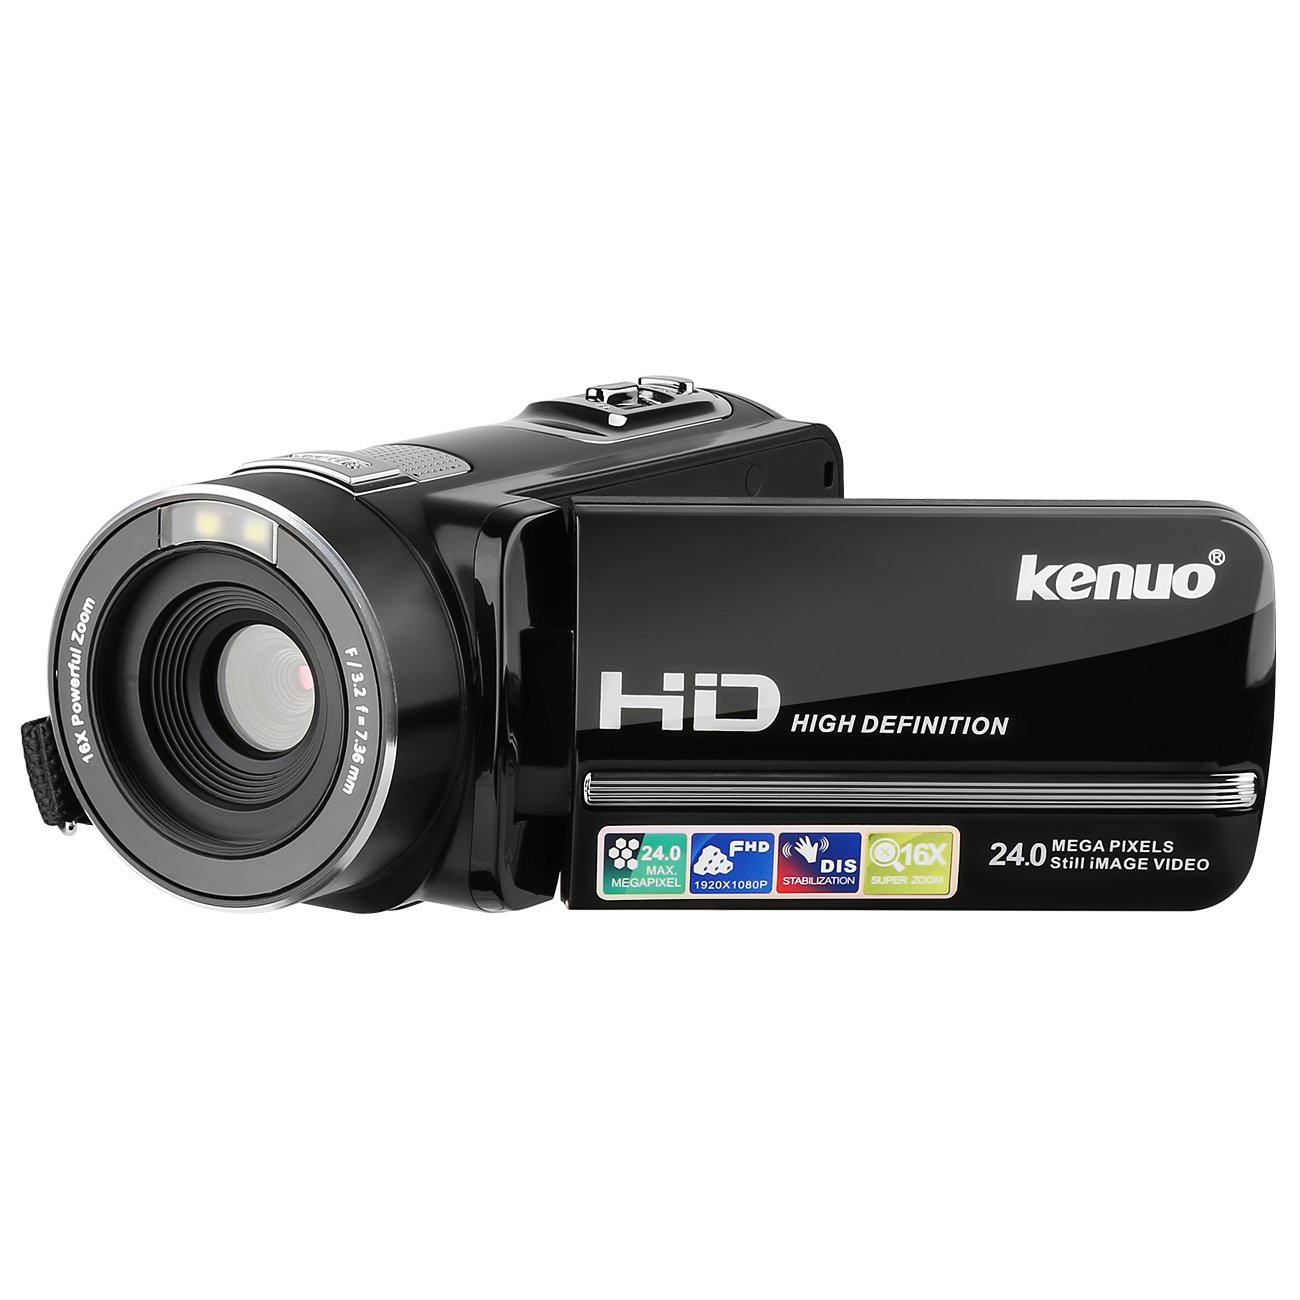 Camcorder, Kenuo 1080P 24MP HD Digital Video Camera,3.0''TFT LCD Stabilization 270 Degree Rotation Screen Camera Bag Lithium Battery (US-301A) 3.0' ' TFT LCD Stabilization 270 Degree Rotation Screen Camera Bag Lithium Battery (US-301A)